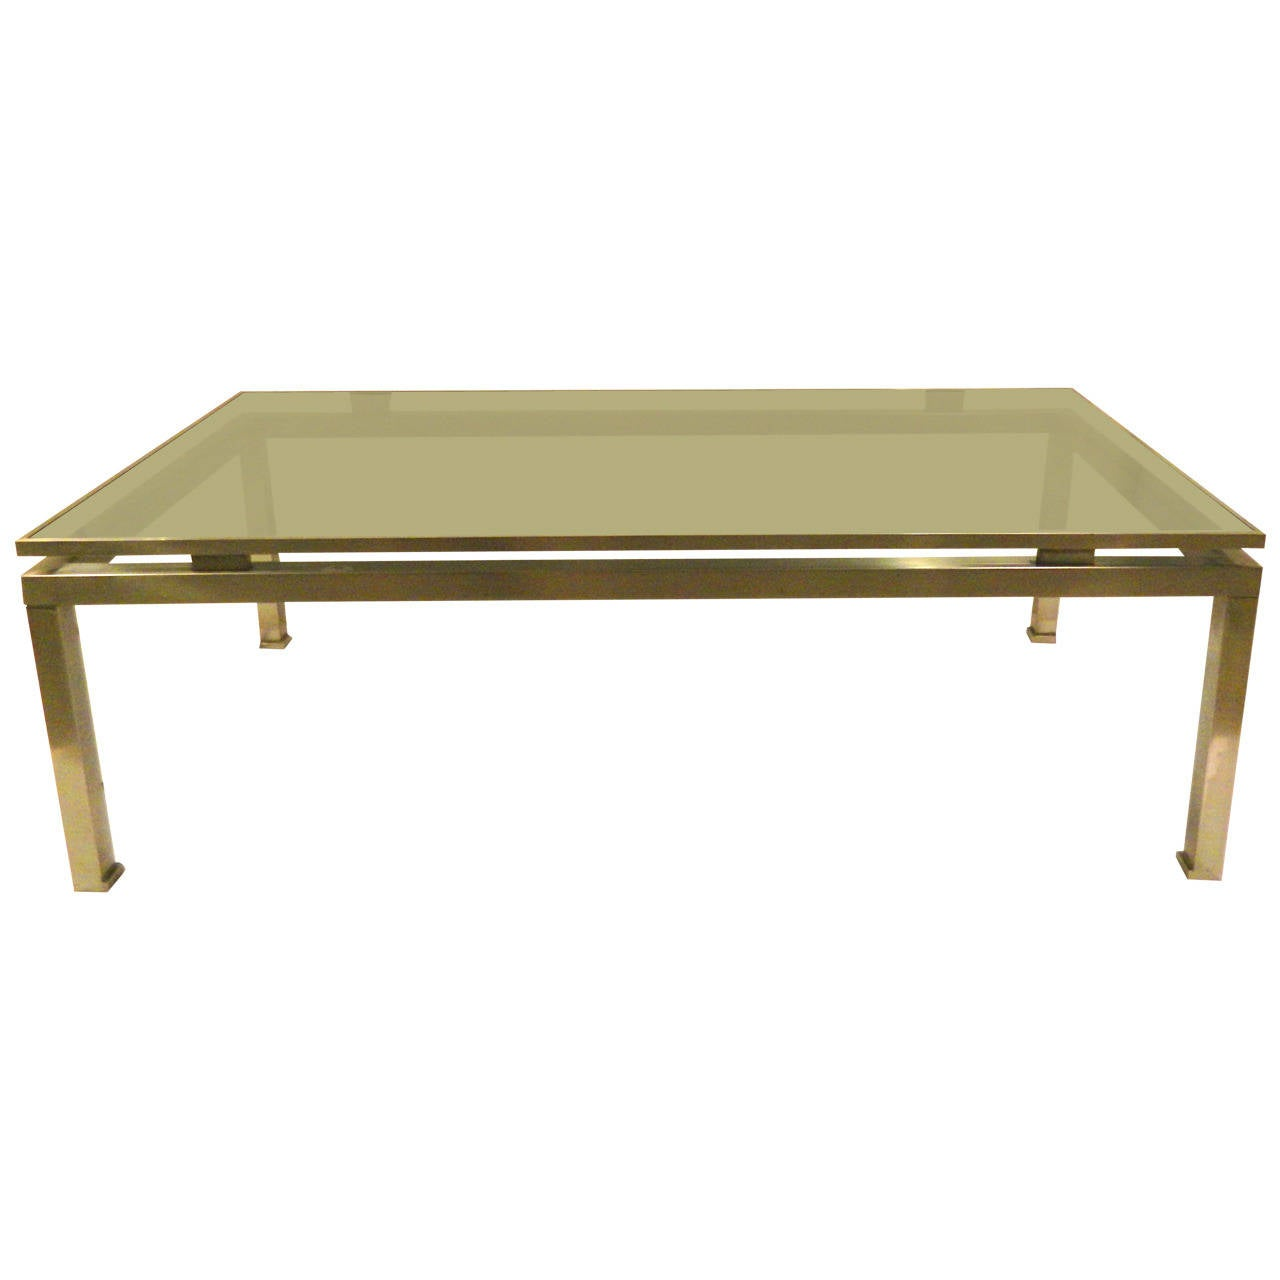 Coffee Table Guy Lefevre For Maison Jansen Circa 1960s 1970s For Sale At 1stdibs